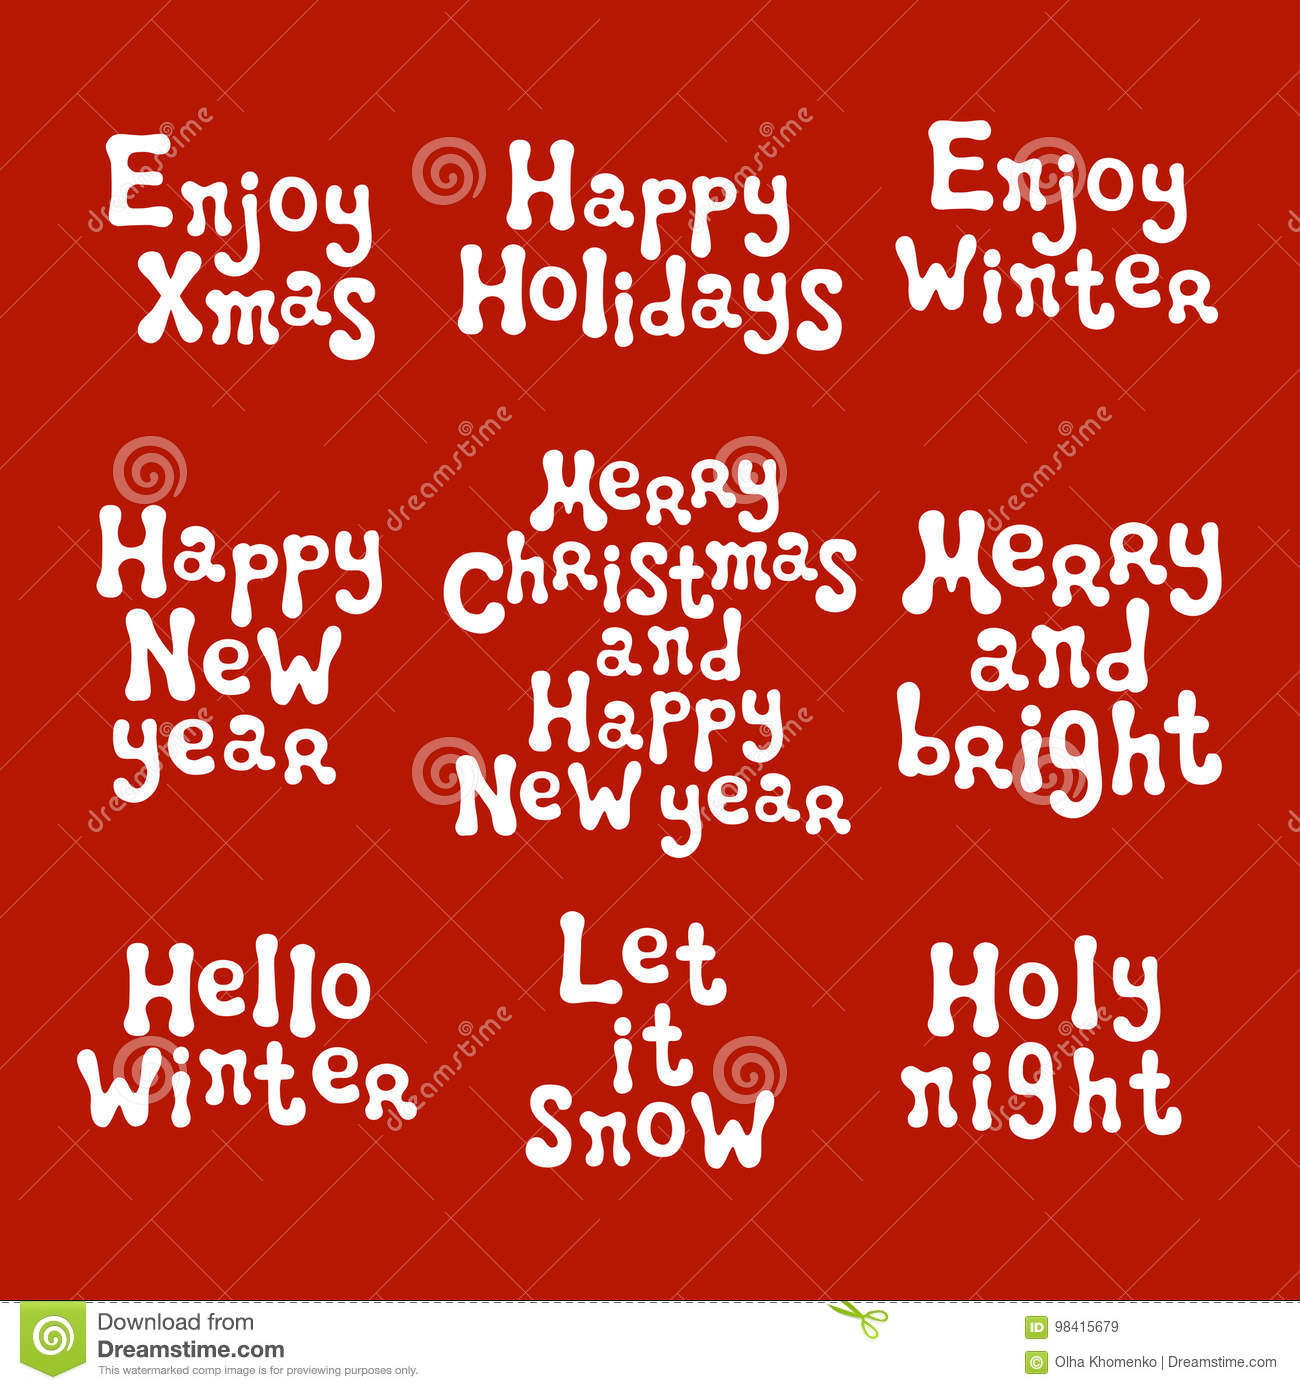 Christmas and new year calligraphy phrases set handwritten brush handwritten brush seasons lettering collection xmas phrases hand drawn design elements happy holidays greeting card text christmas calligraphy m4hsunfo